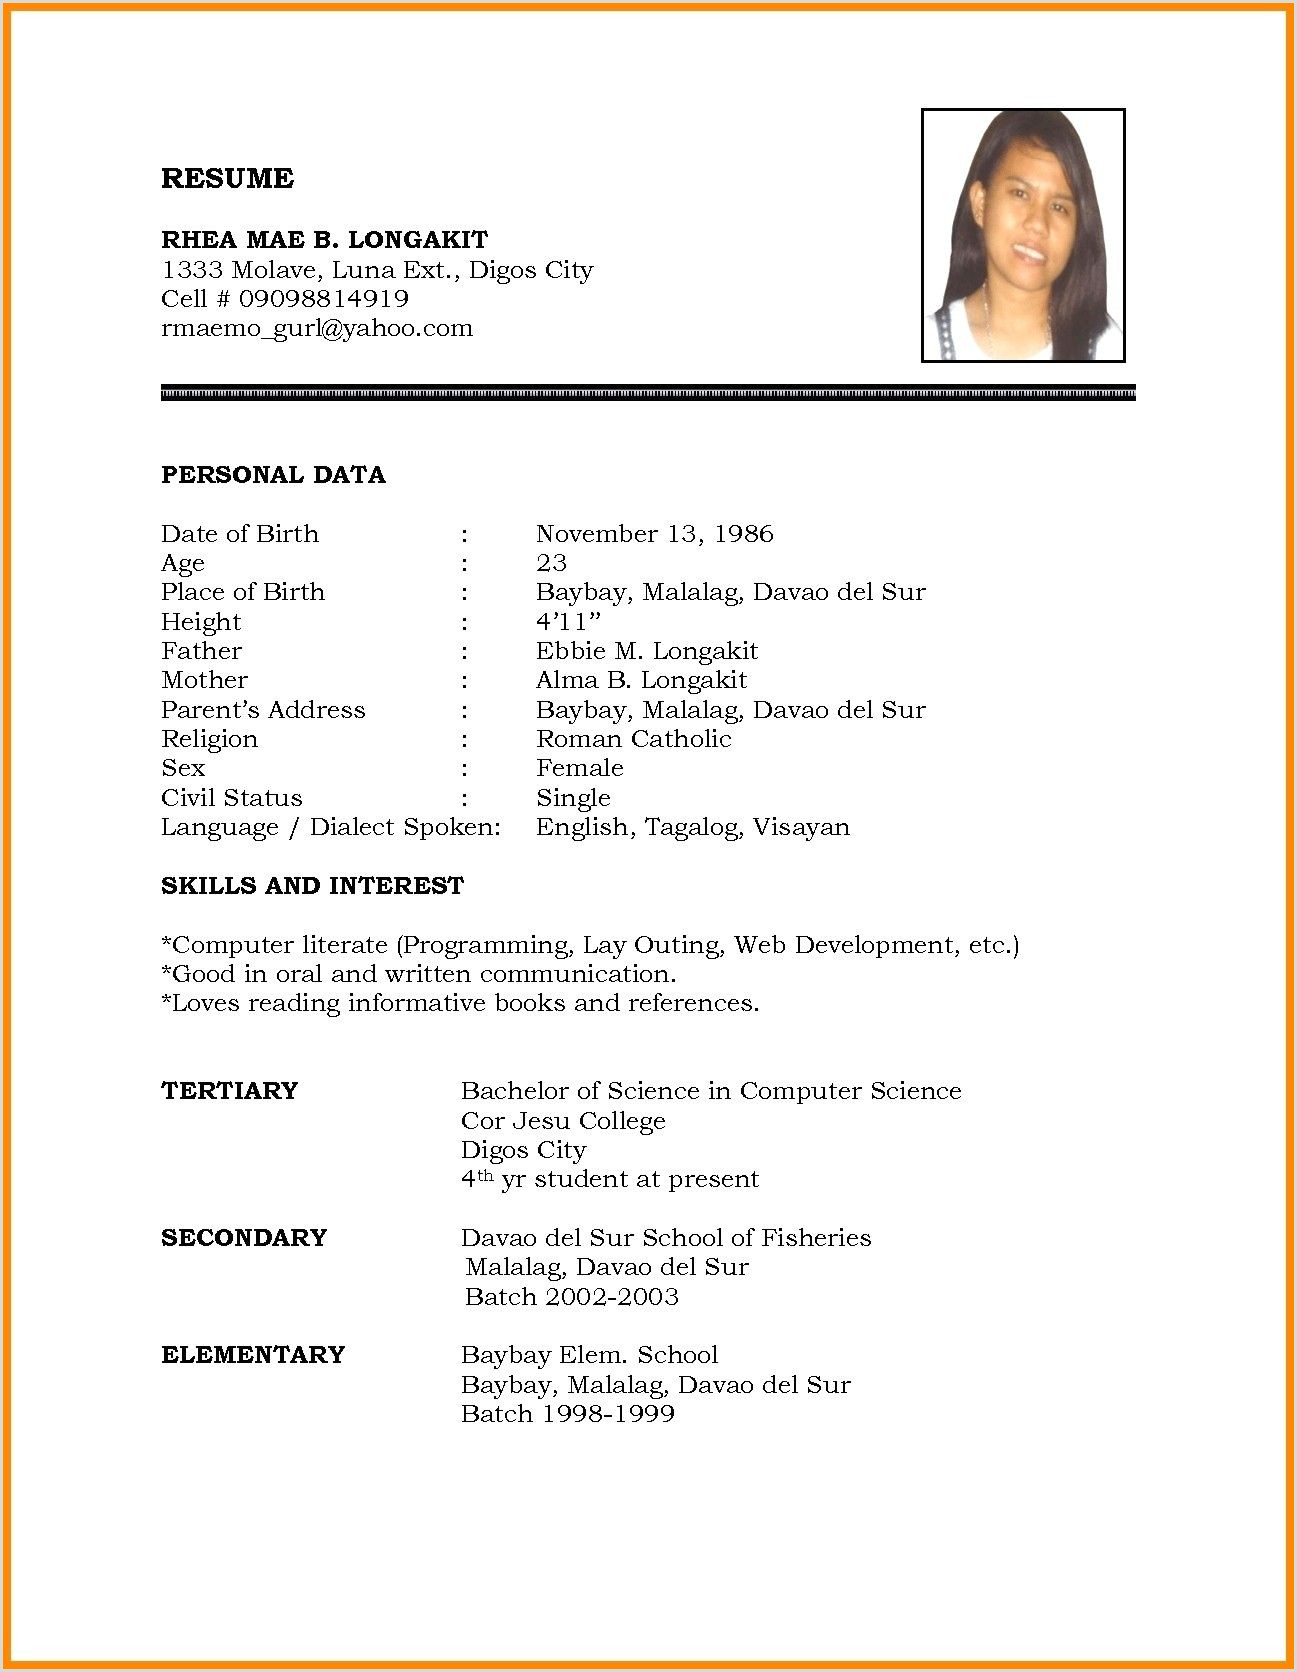 Marriage Resume Format Word File Inspirational Biodata 2